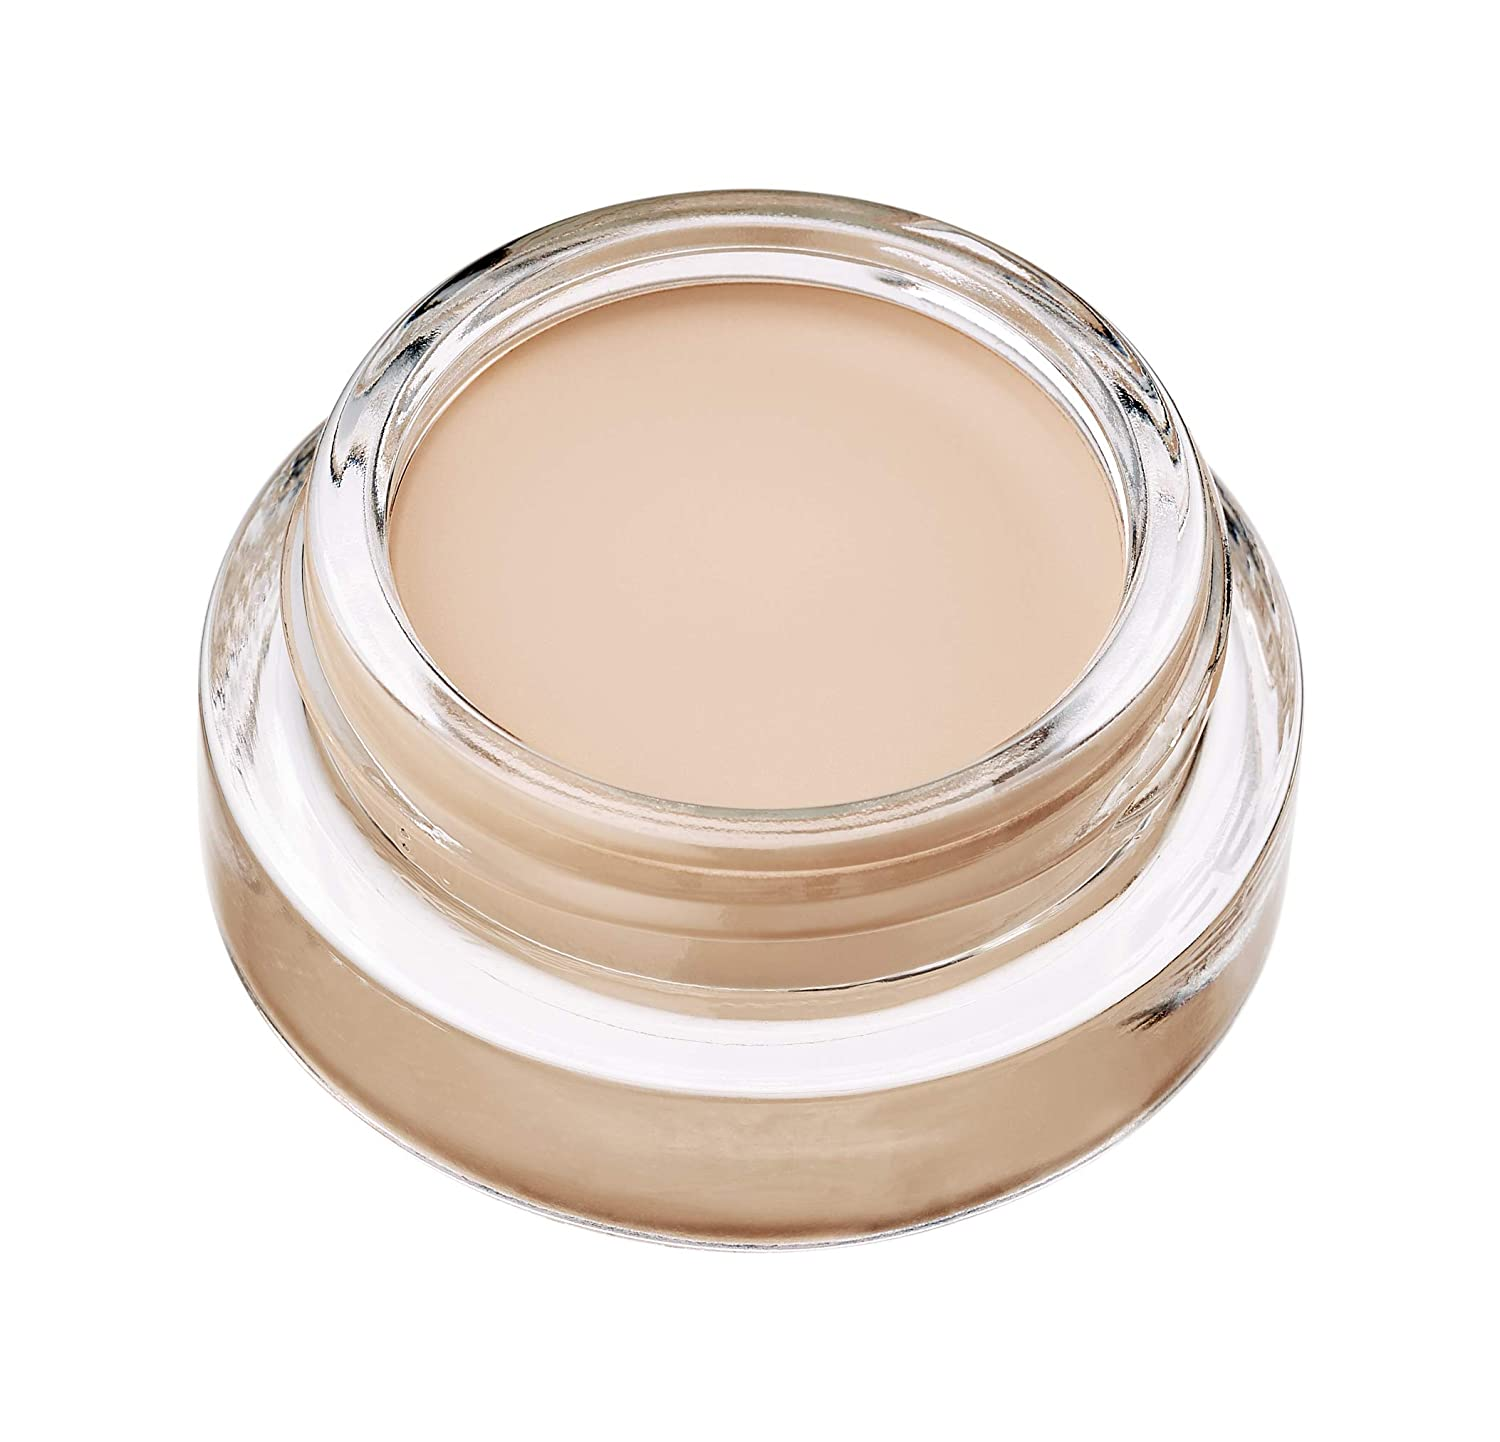 L'Oreal Paris Infallible Concealer Pomade 1.5 Light Medium 15g L' Oreal 3600523543311